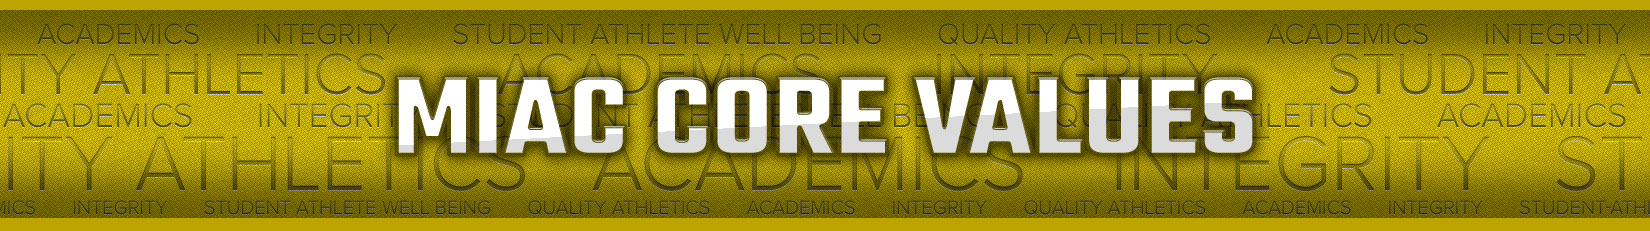 MIAC Core Values